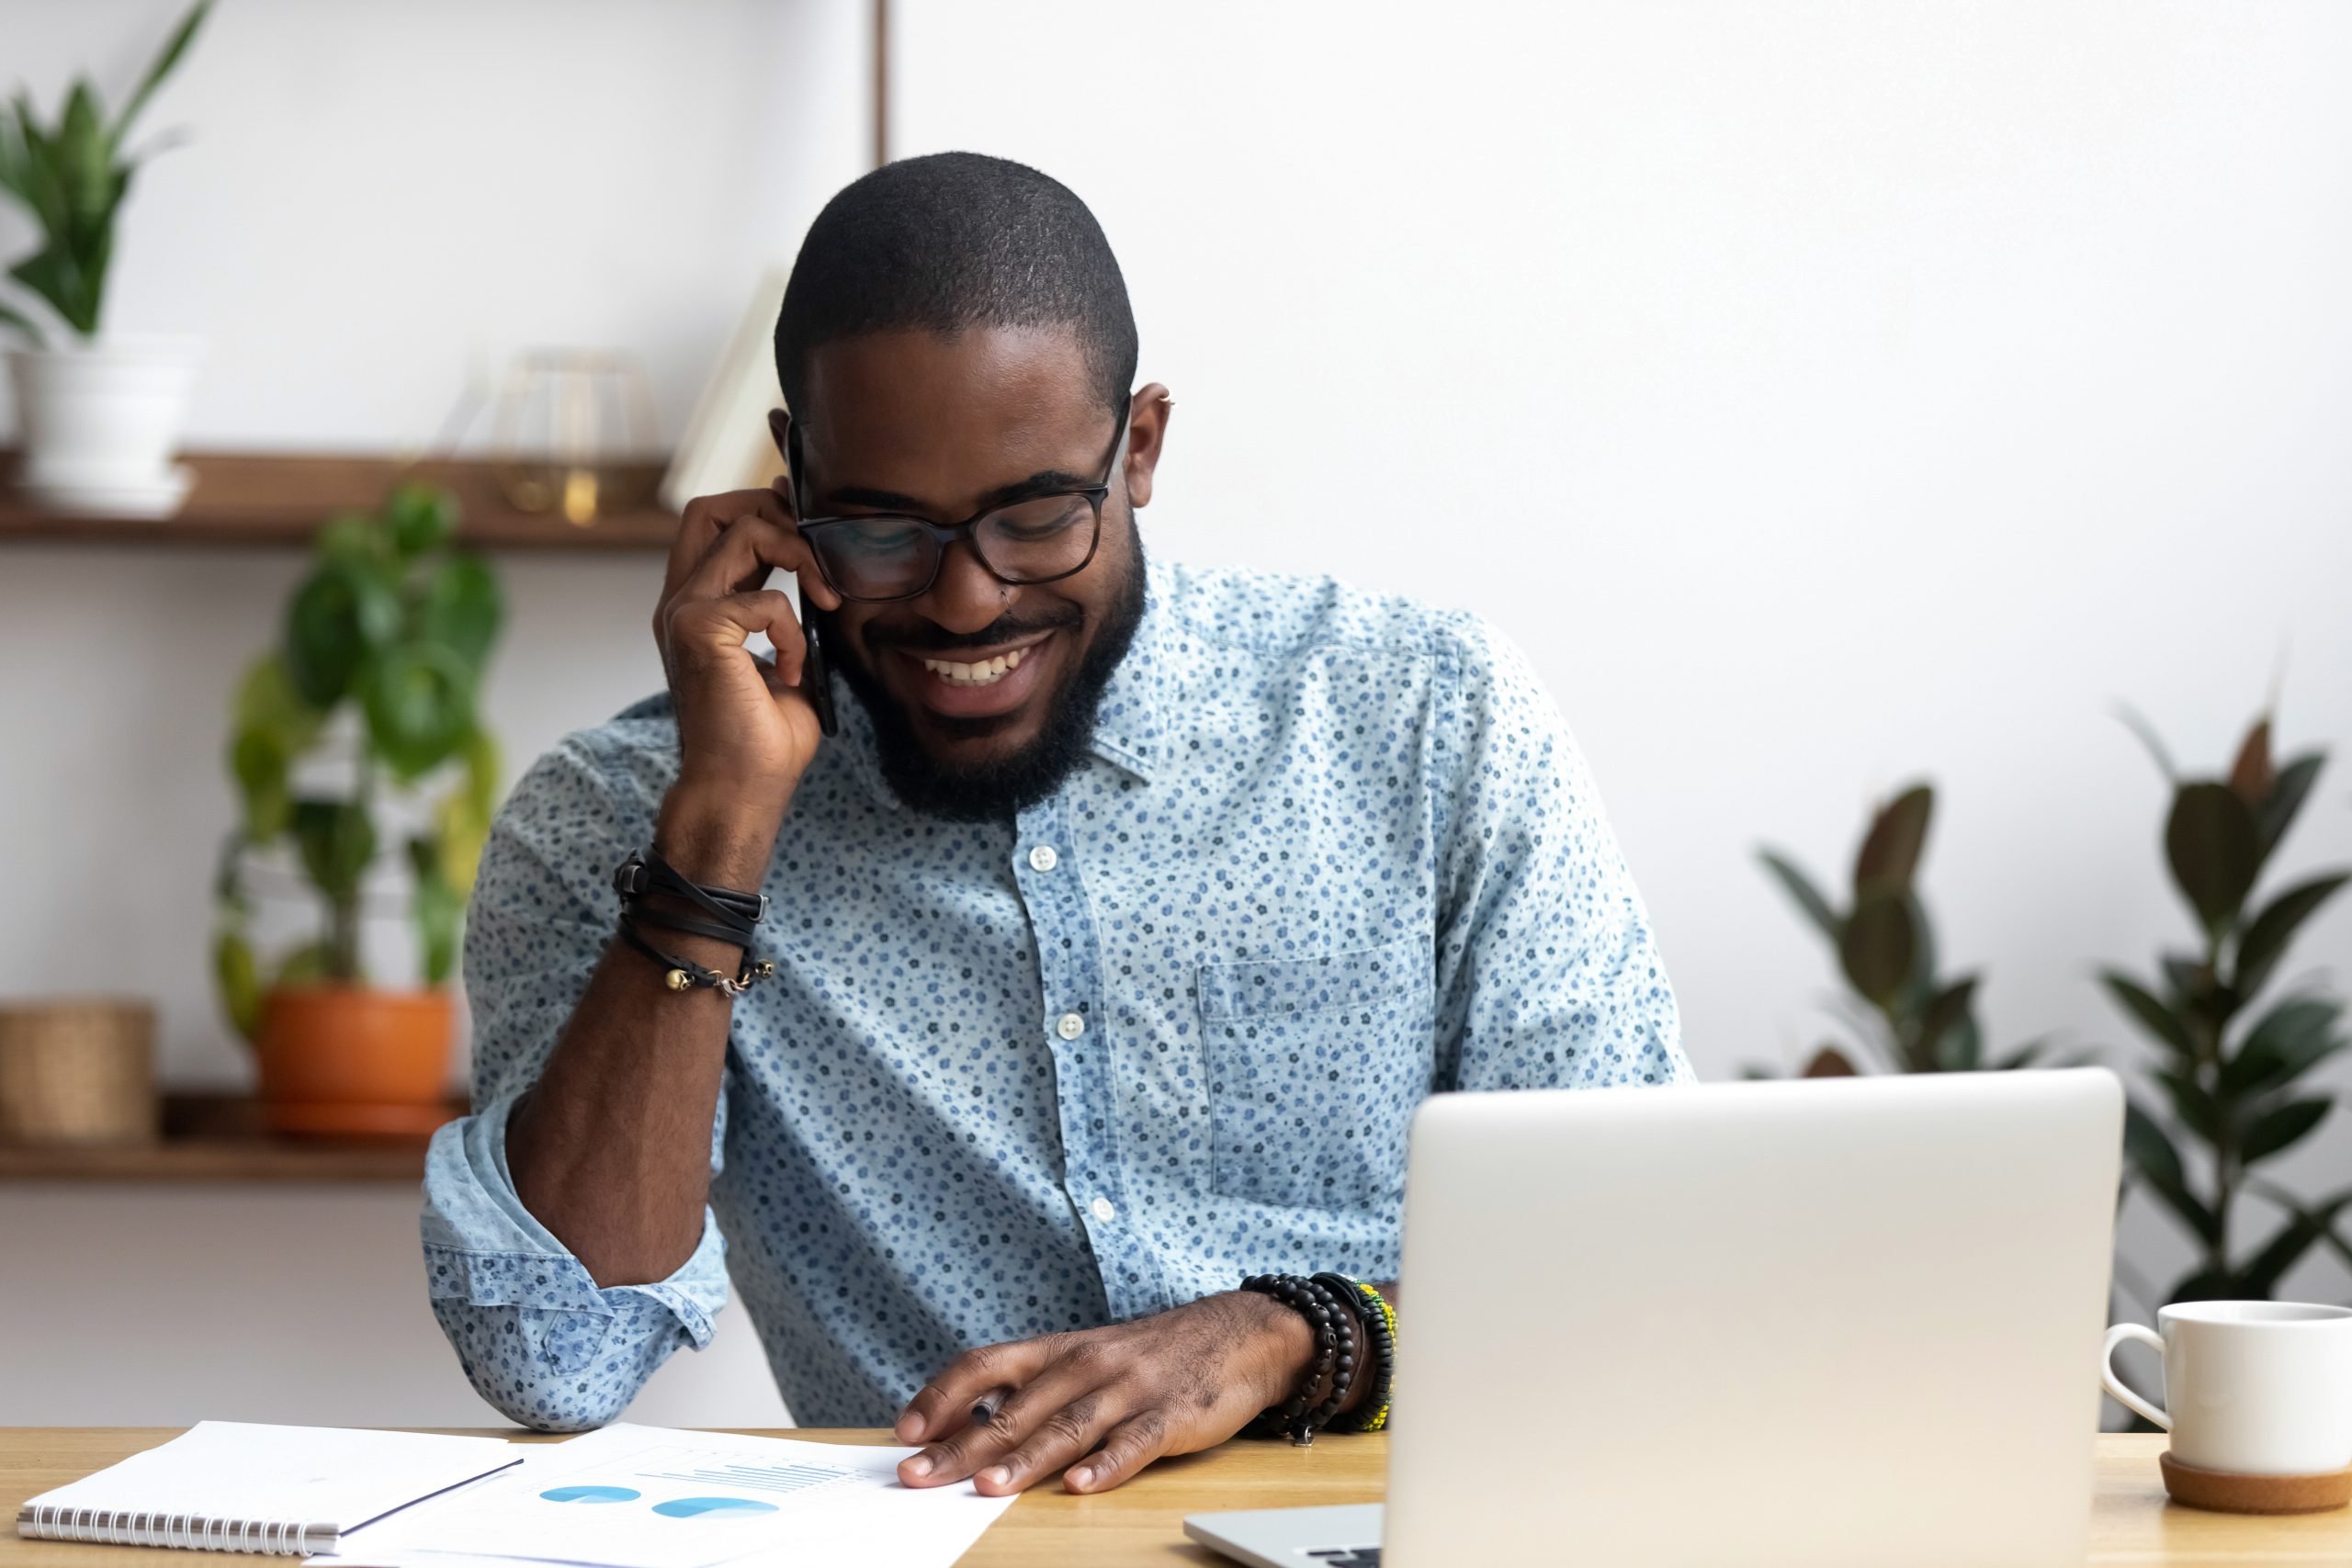 5 times when you can really benefit from speaking with us